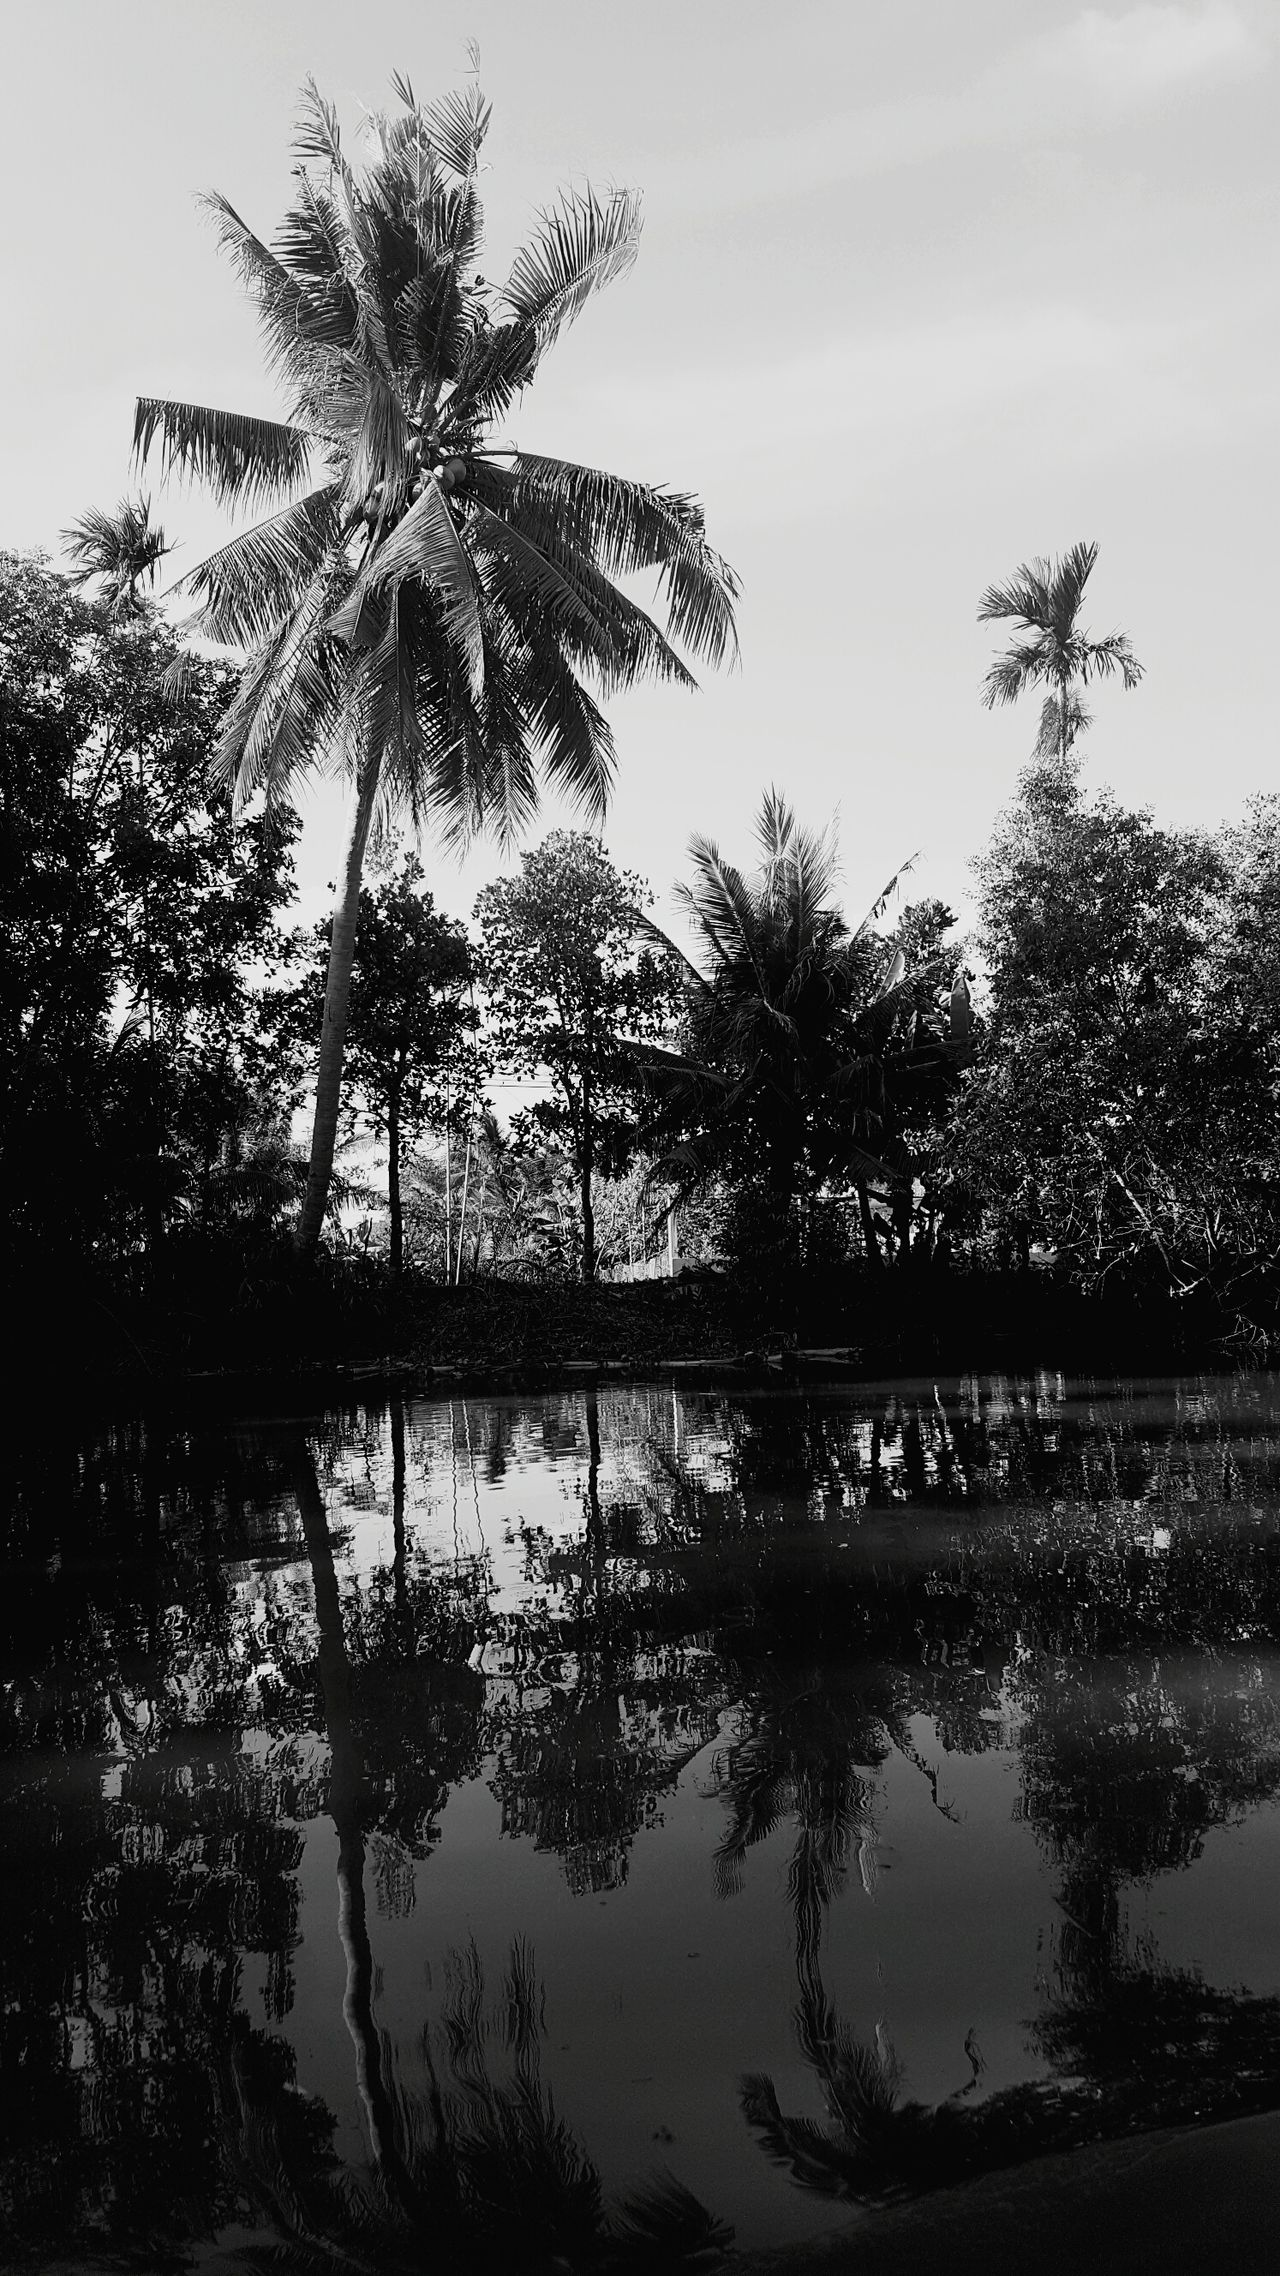 Reflection Tree Water Palm Tree Nature Lake No People Outdoors Sky Tranquility Day Beauty In Nature Travel Destinations Traveling EyeEm Traveling EyeEm Travel Photography Travel Photography Mood Travel Vietnam Mekong Delta Mekong Mekong River B&w B&w Photography